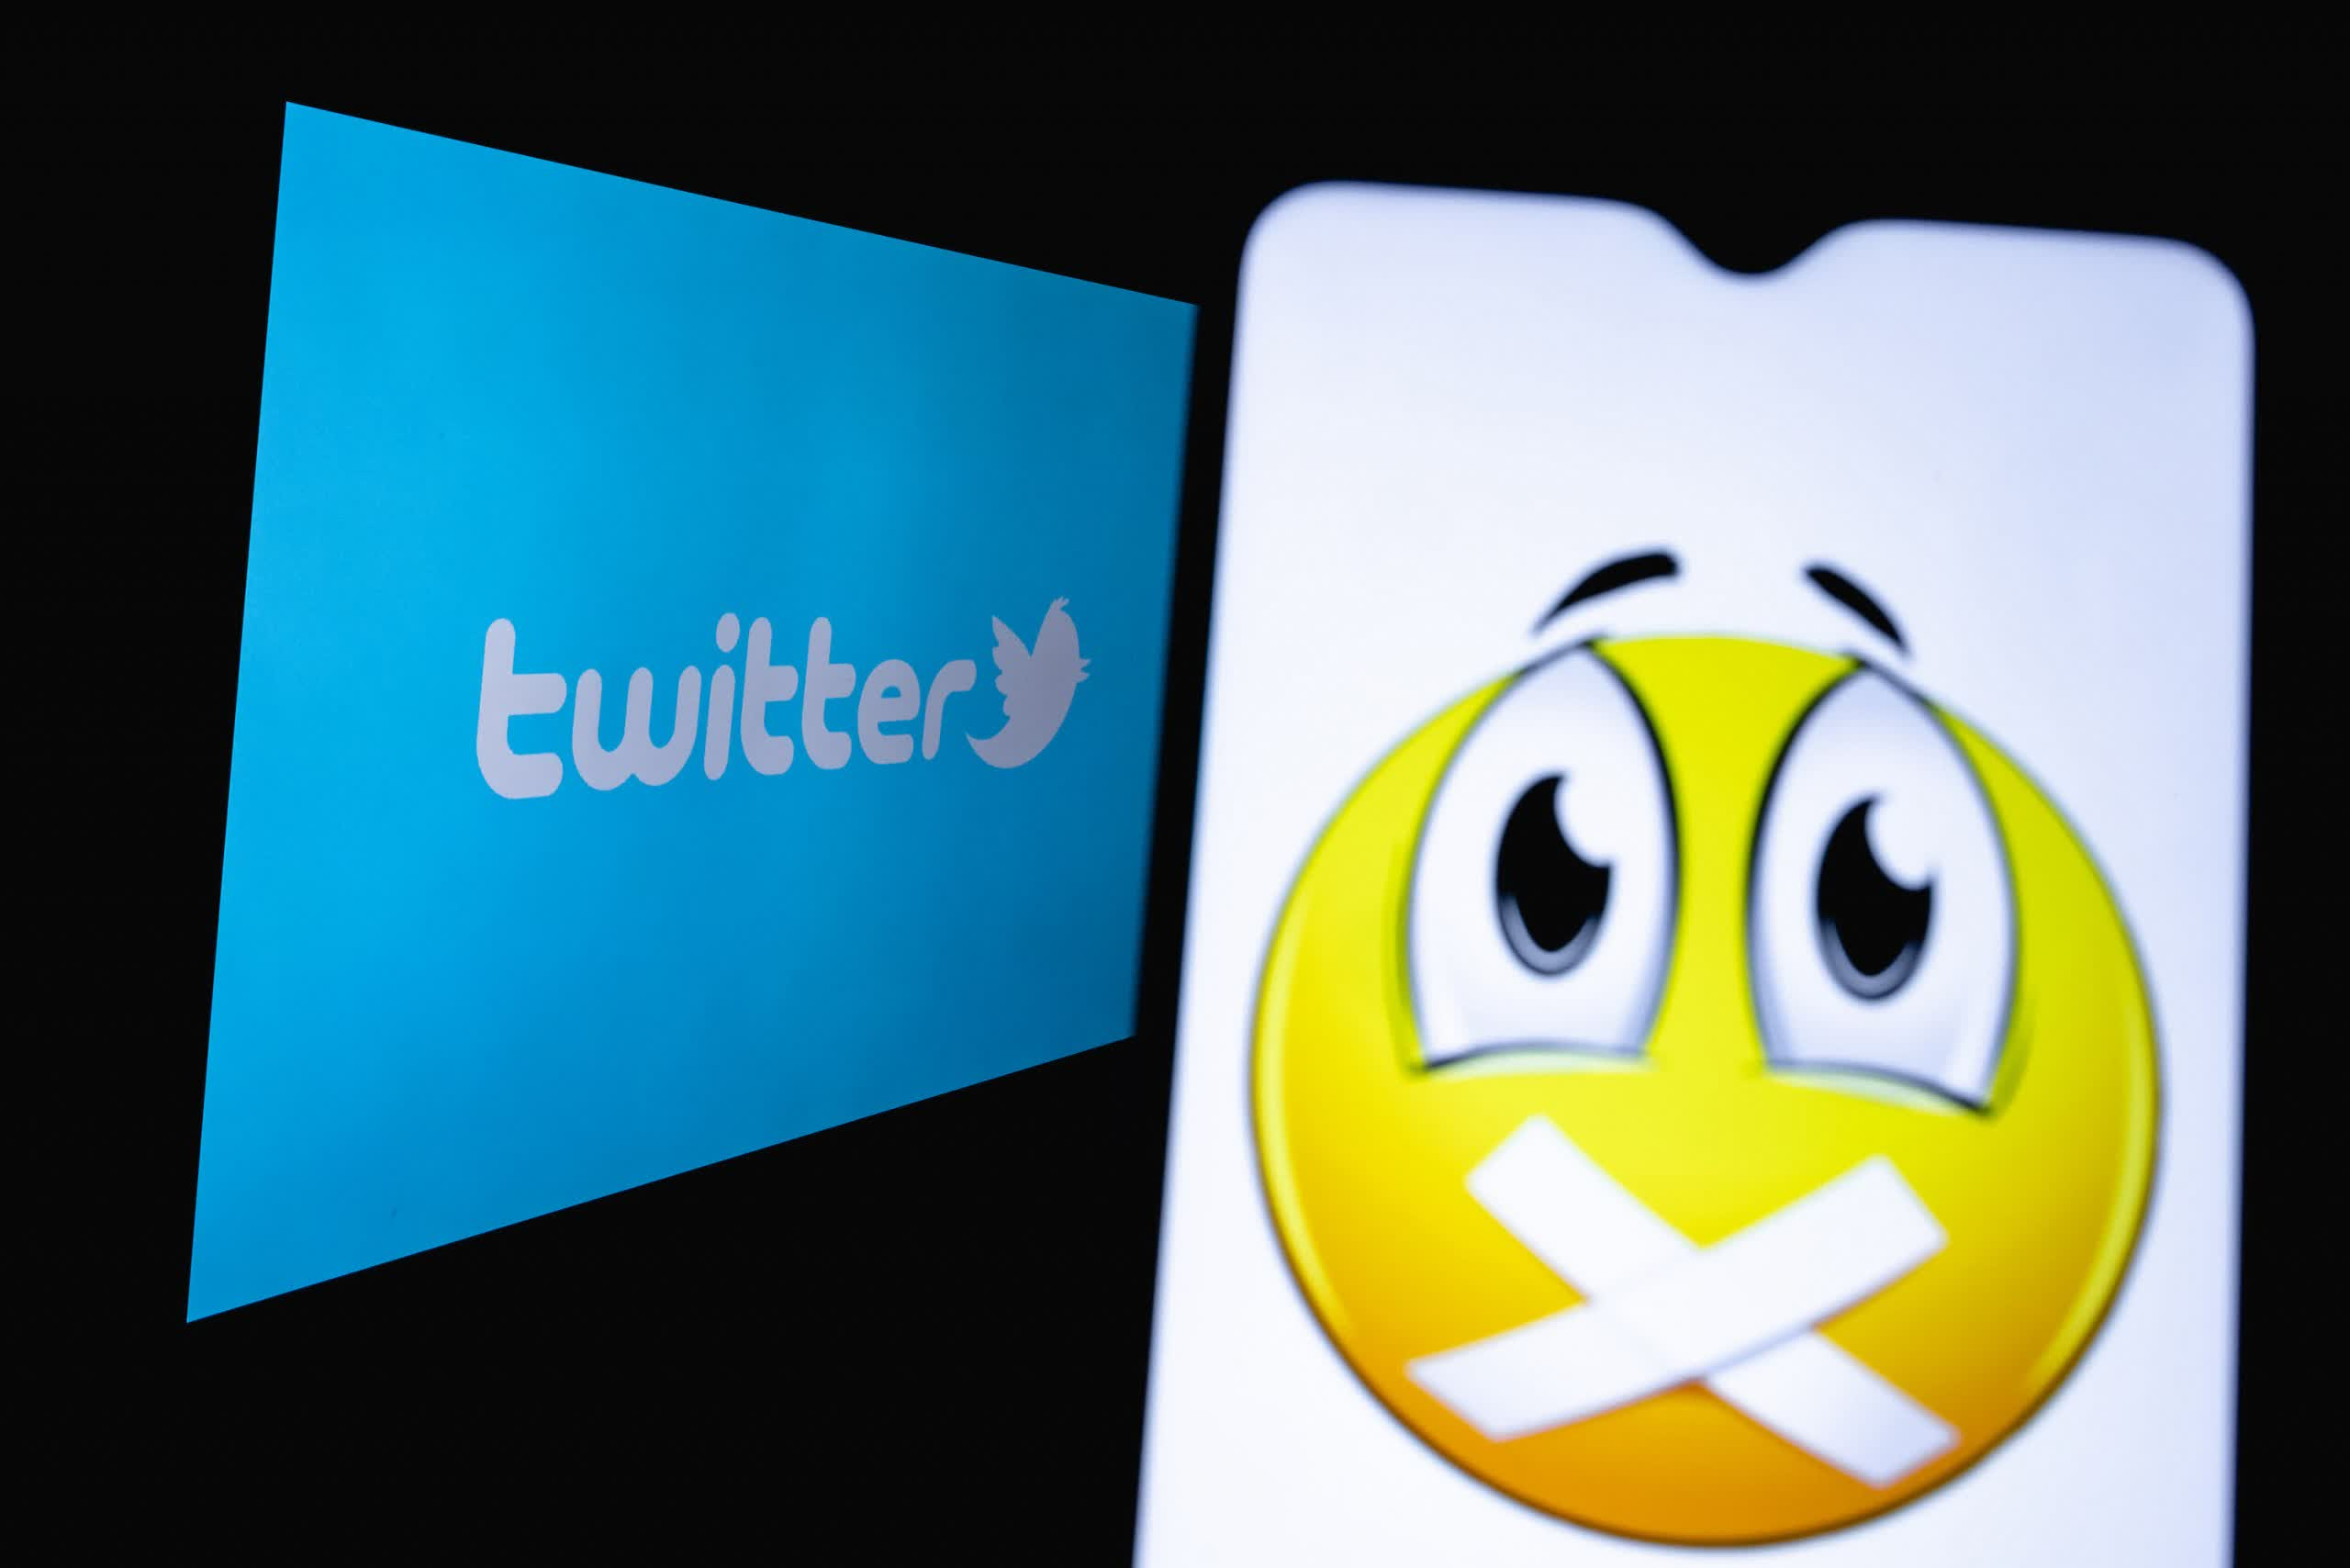 Twitter might implement an 'unmention' function for users to disengage from toxic tweets